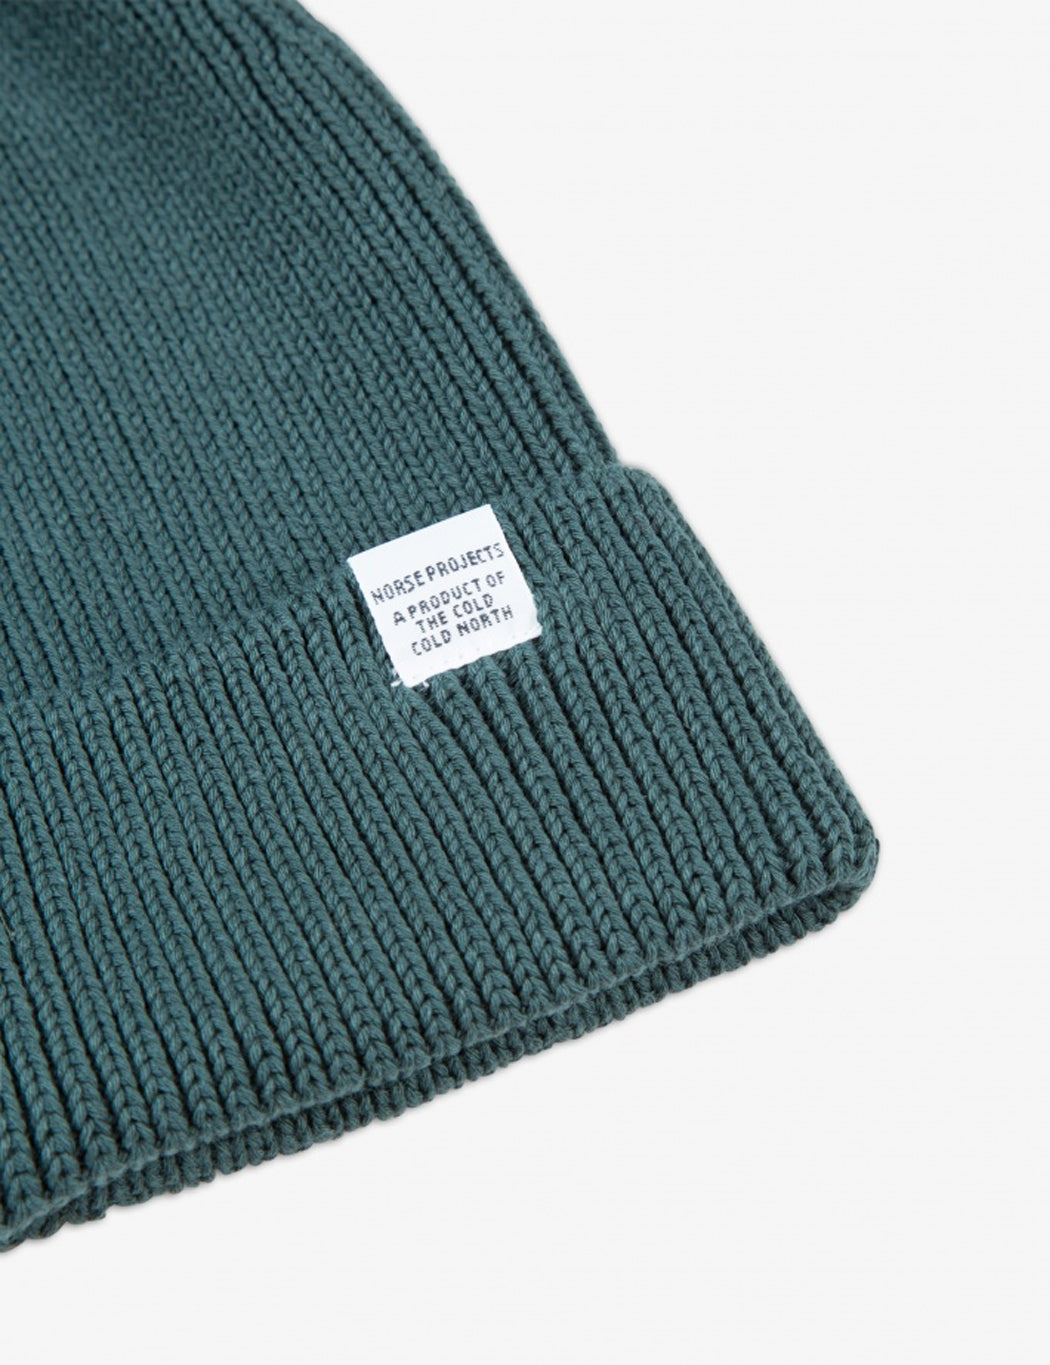 2fa25a38569 ... Norse Projects Cotton Watch Beanie Hat - Verge Green ...